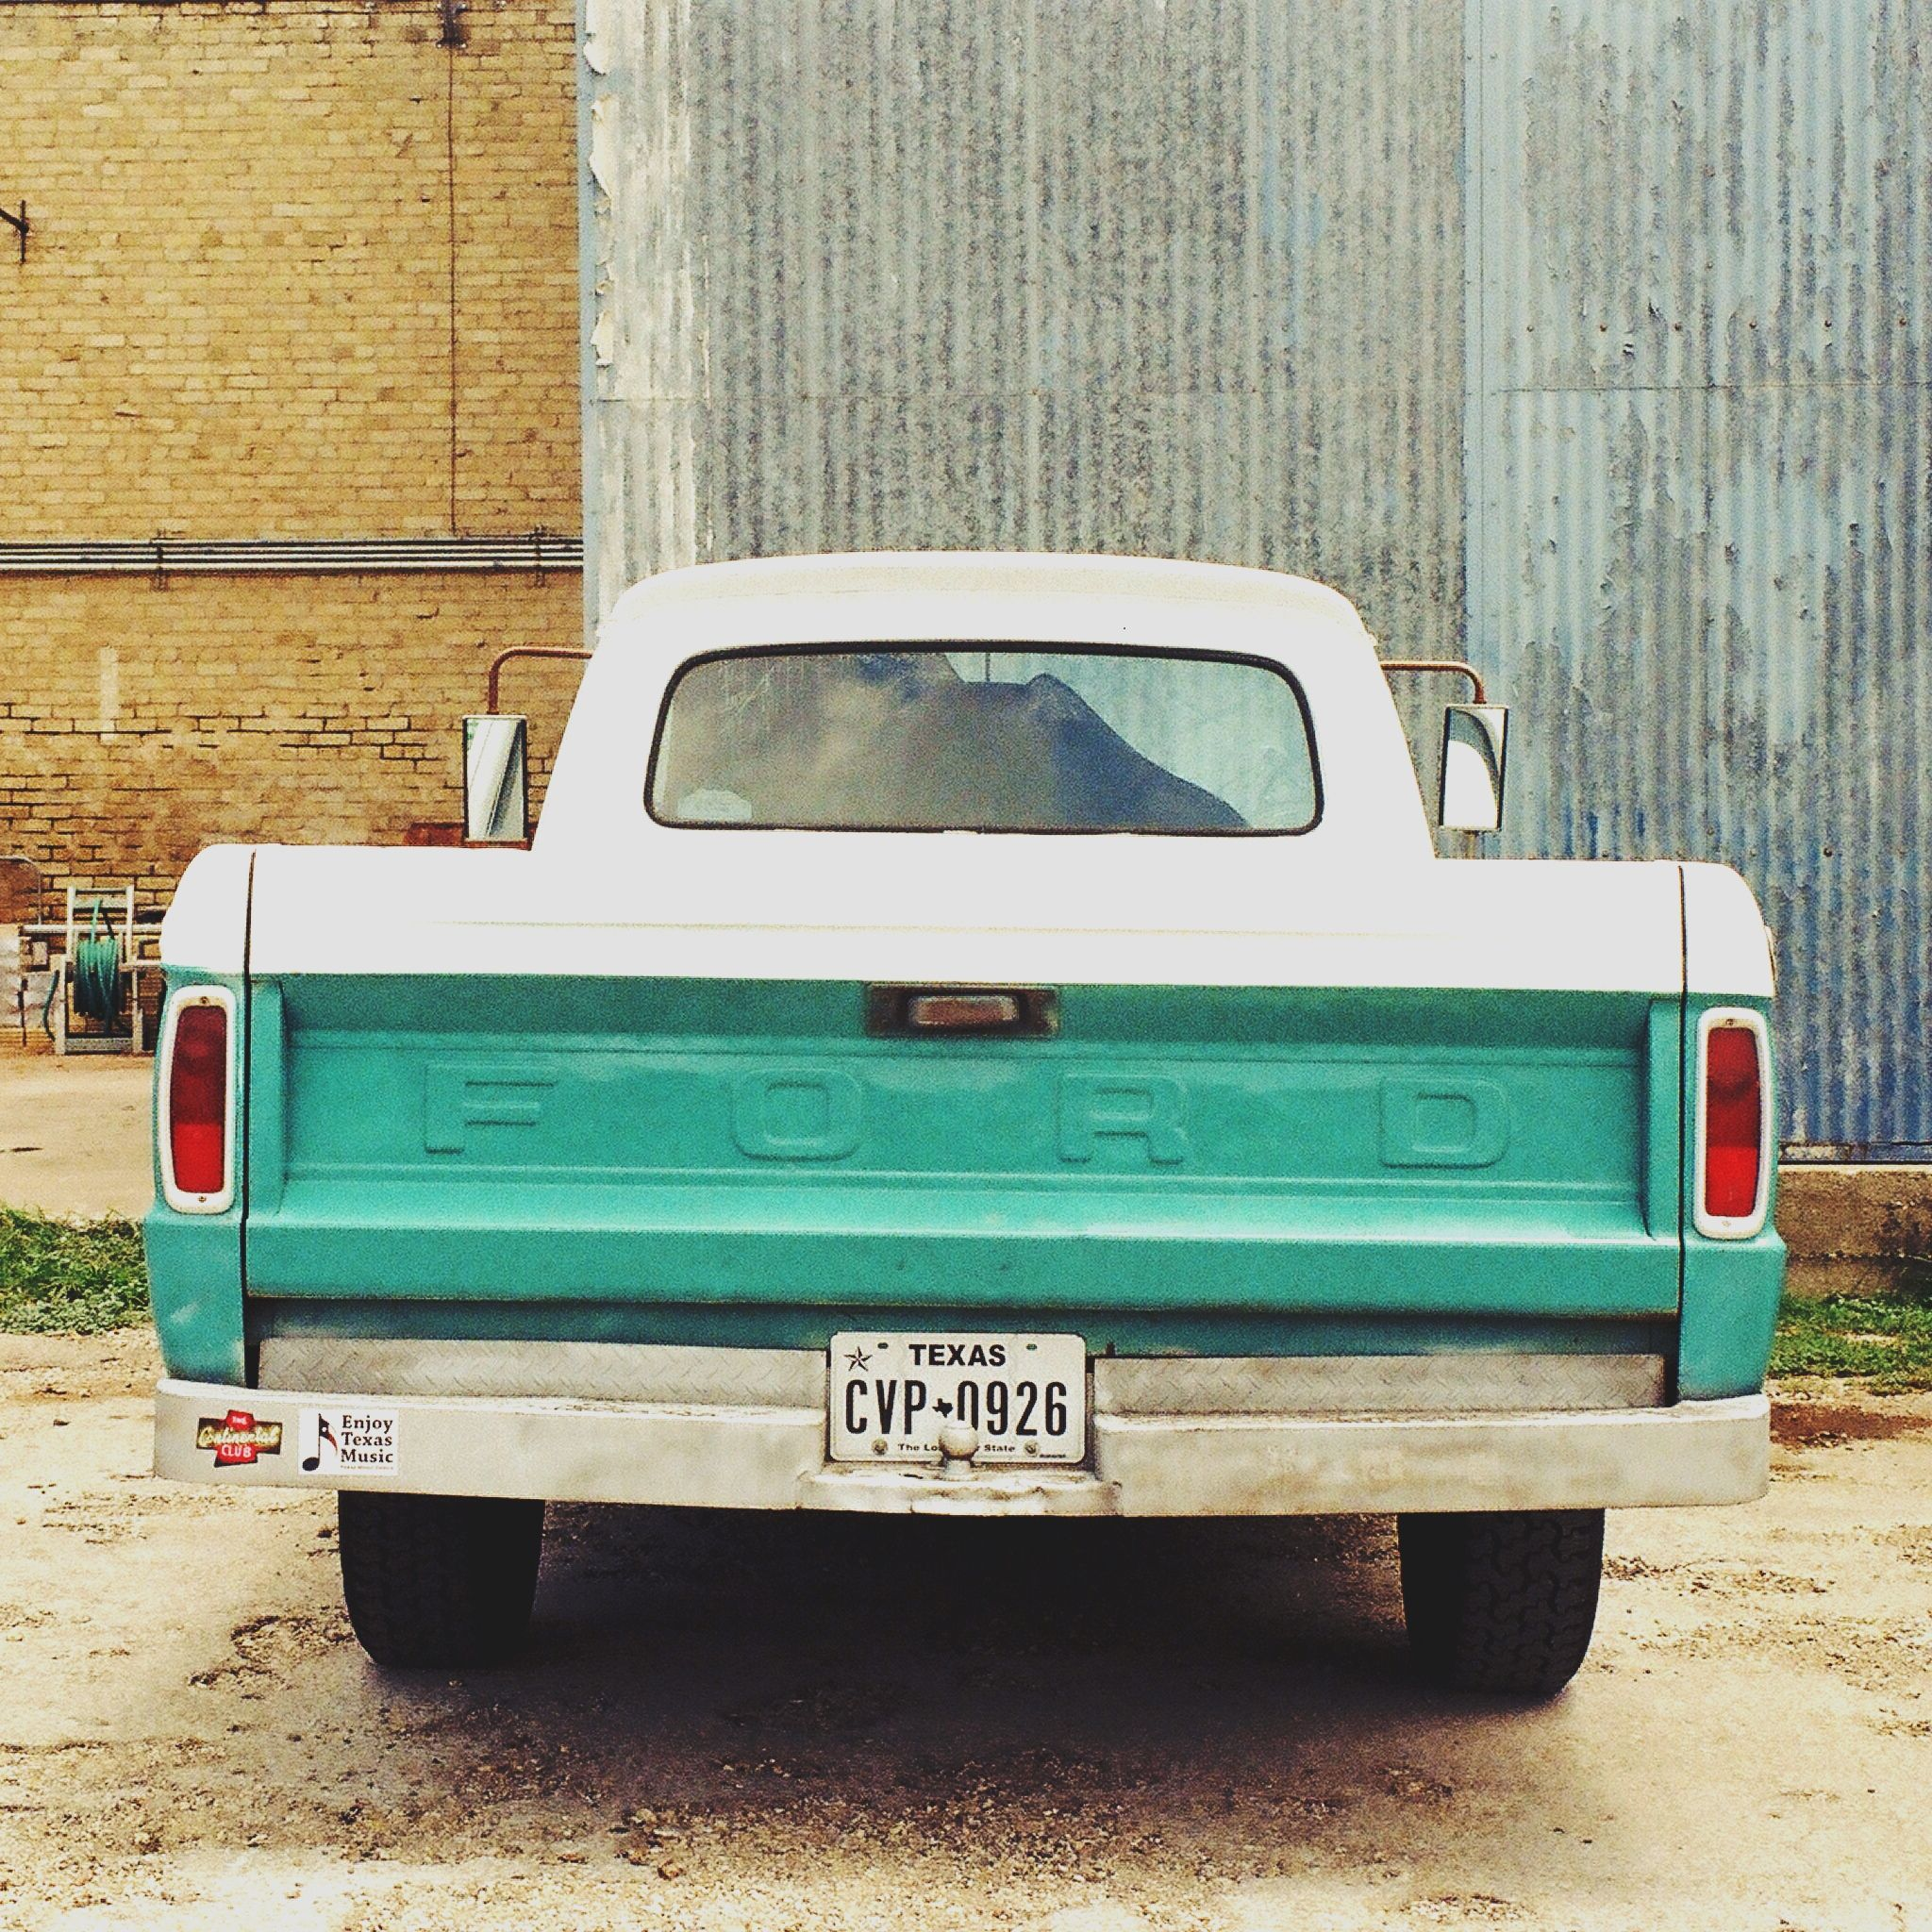 35mm film photography of Texas by Kat Swansey.    #35mm #film #photography #texas #smalltown #classictruck